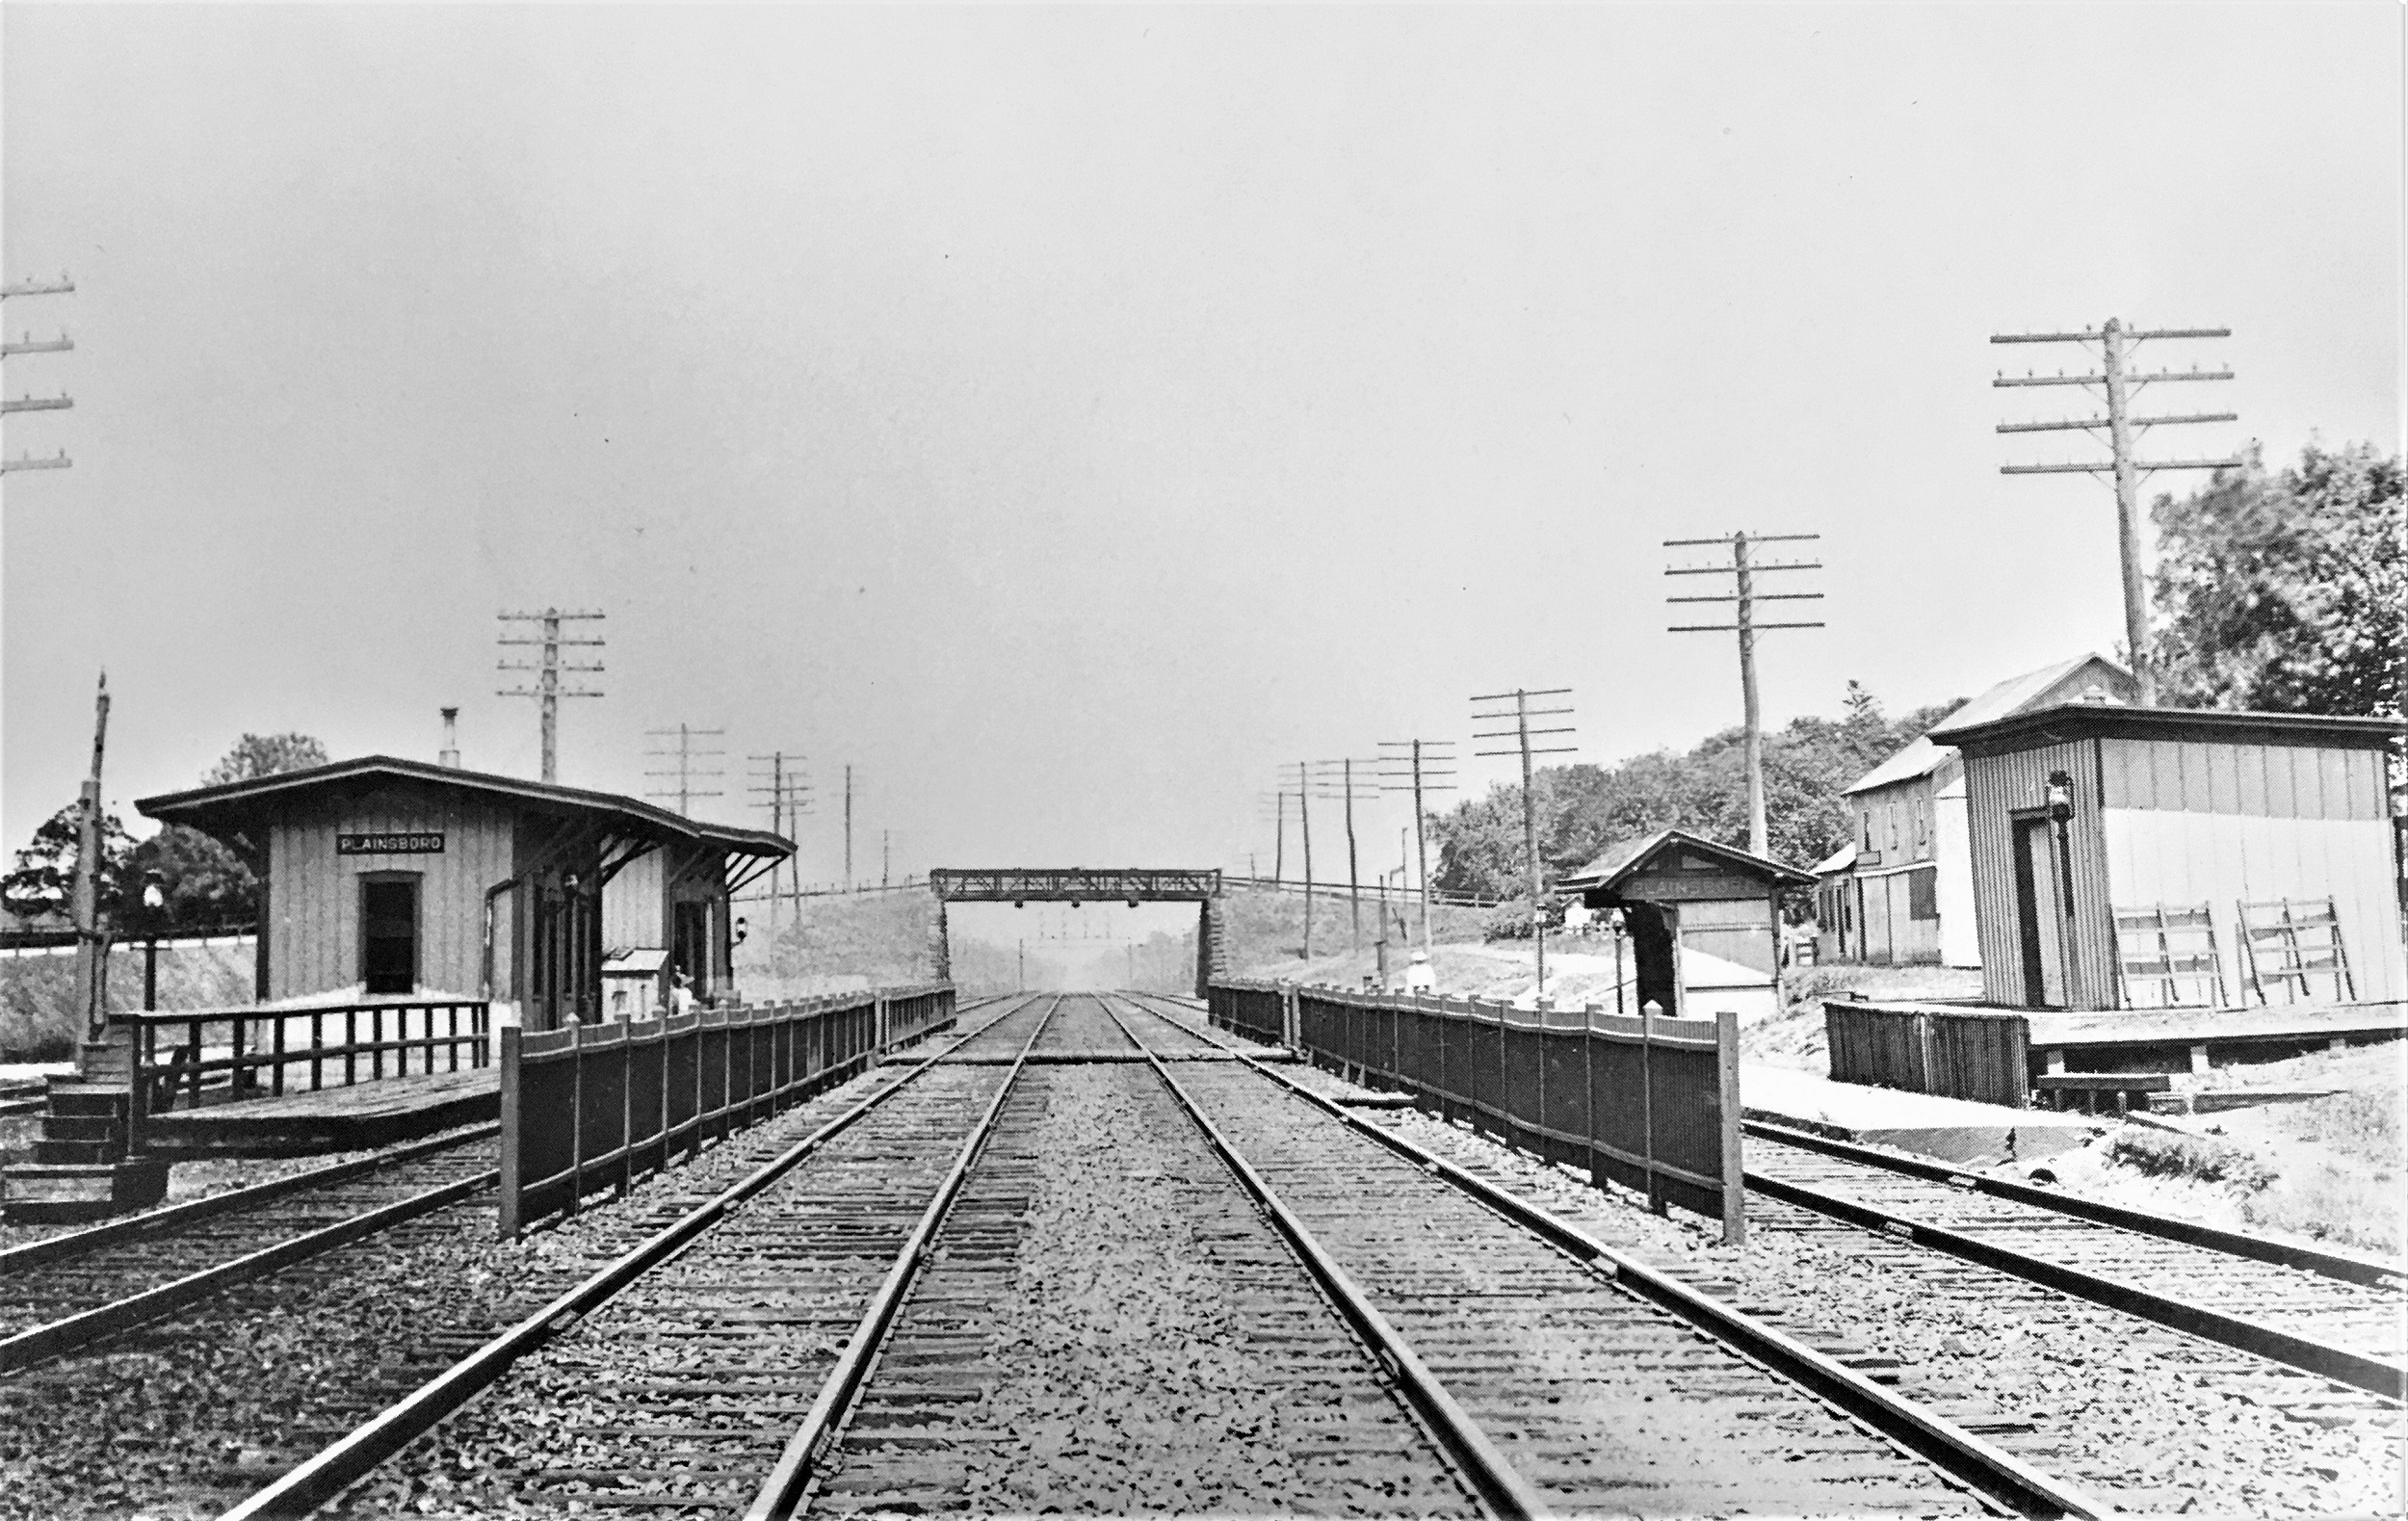 Black and white photograph of Plainsboro Station. There are four sets of train tracks. There are wooden platforms on either side with wooden buildings. A bridge crossing over the tracks is seen in the distance.